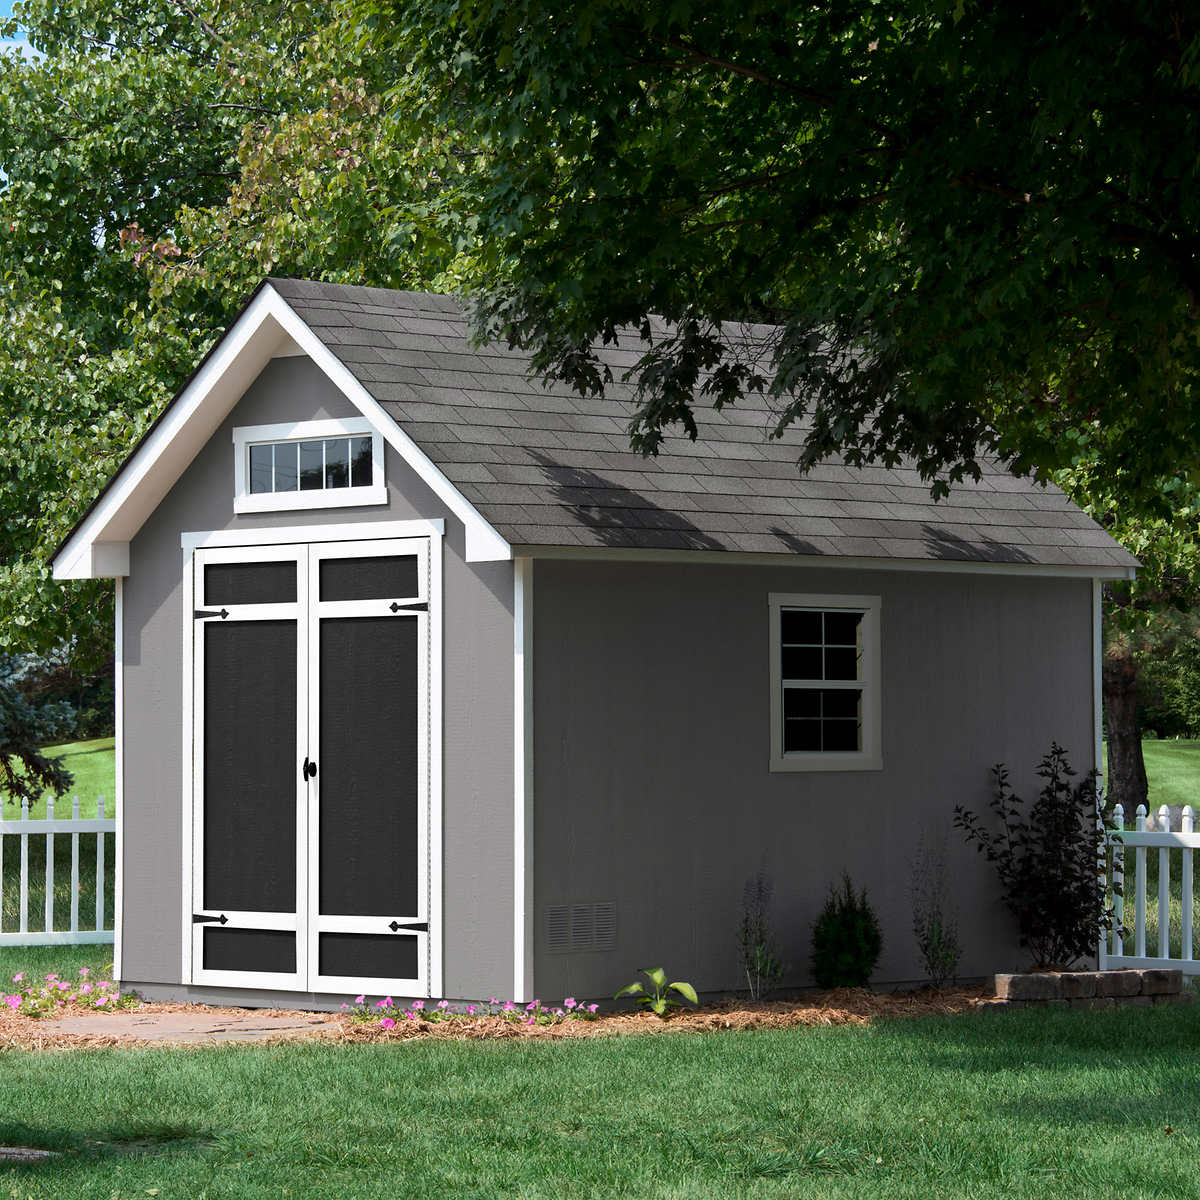 everton 8 x 12 deluxe wood storage shed - Storage Shed House